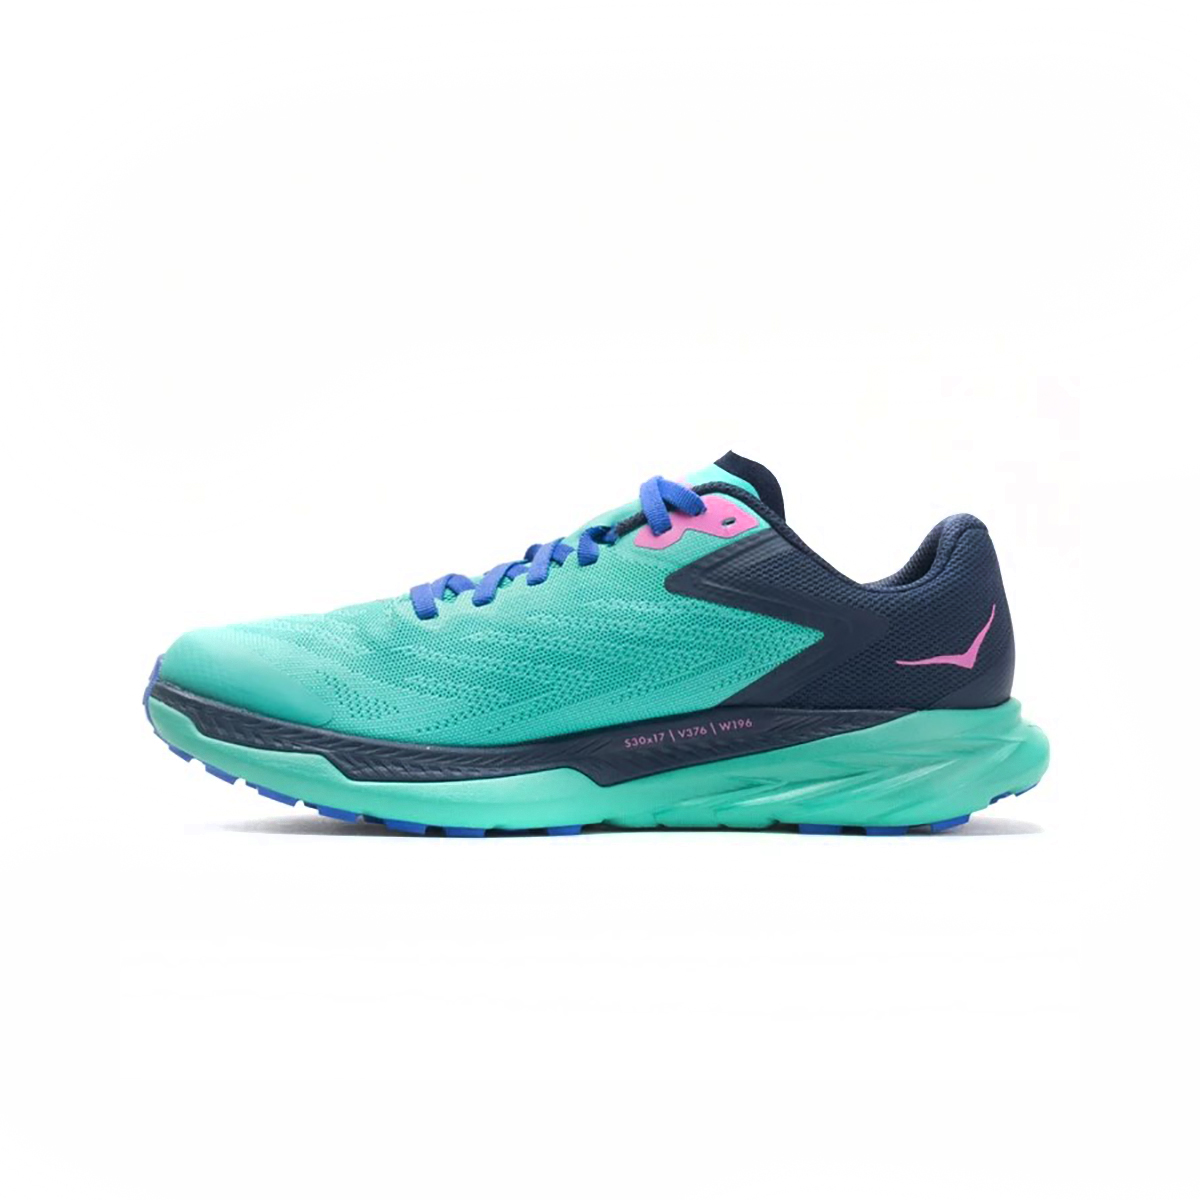 Women's Hoka One One Zinal Trail Running Shoe - Color: Atlantis / Outer Space - Size: 5 - Width: Regular, Atlantis / Outer Space, large, image 2